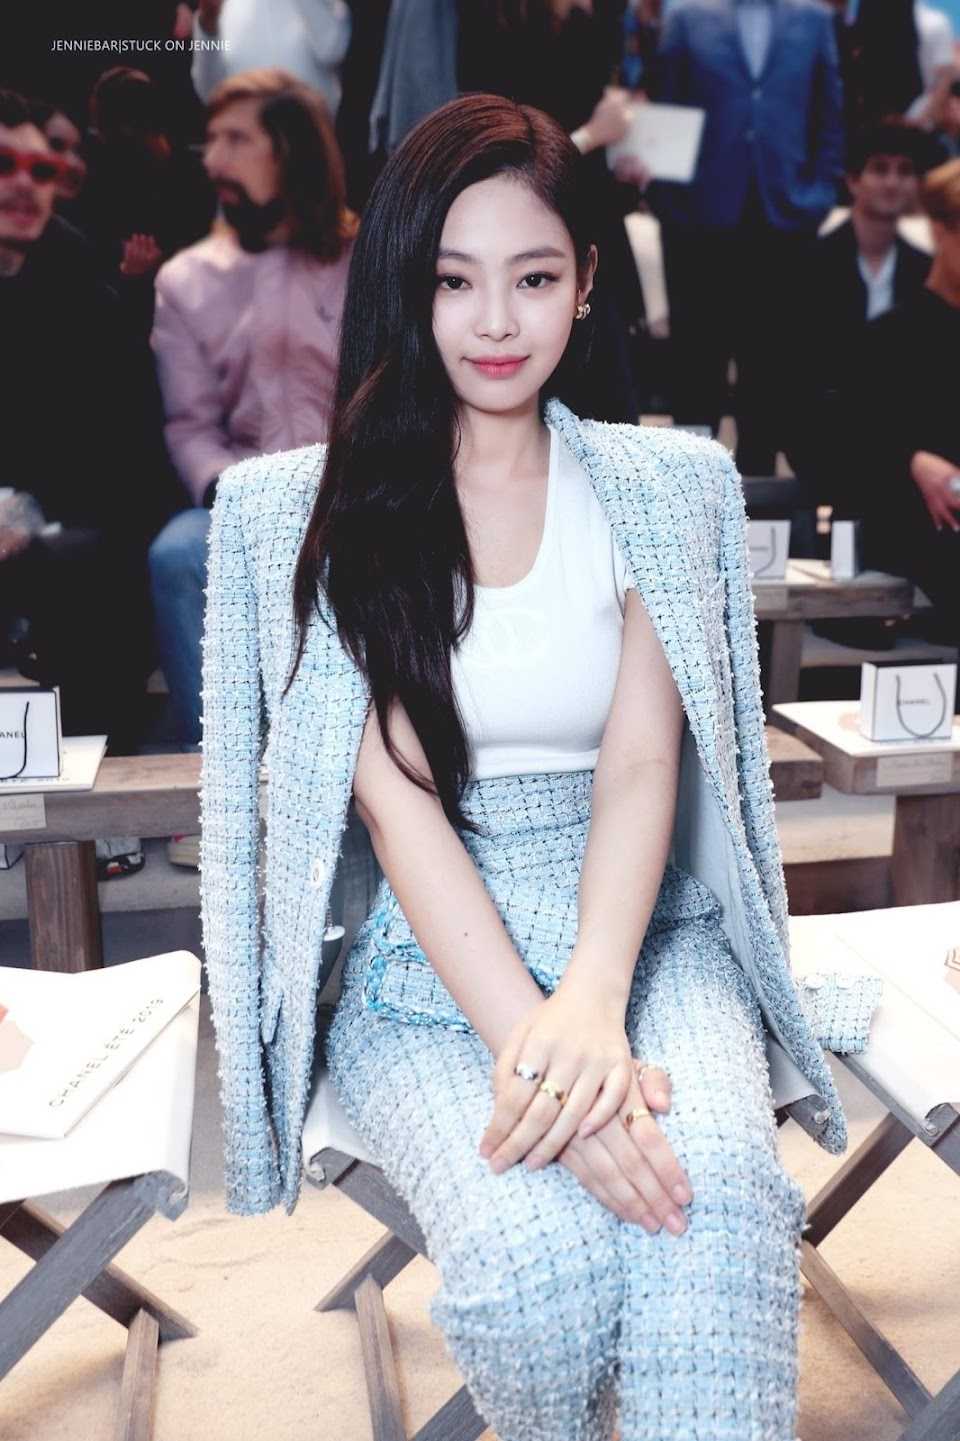 jennie event 3